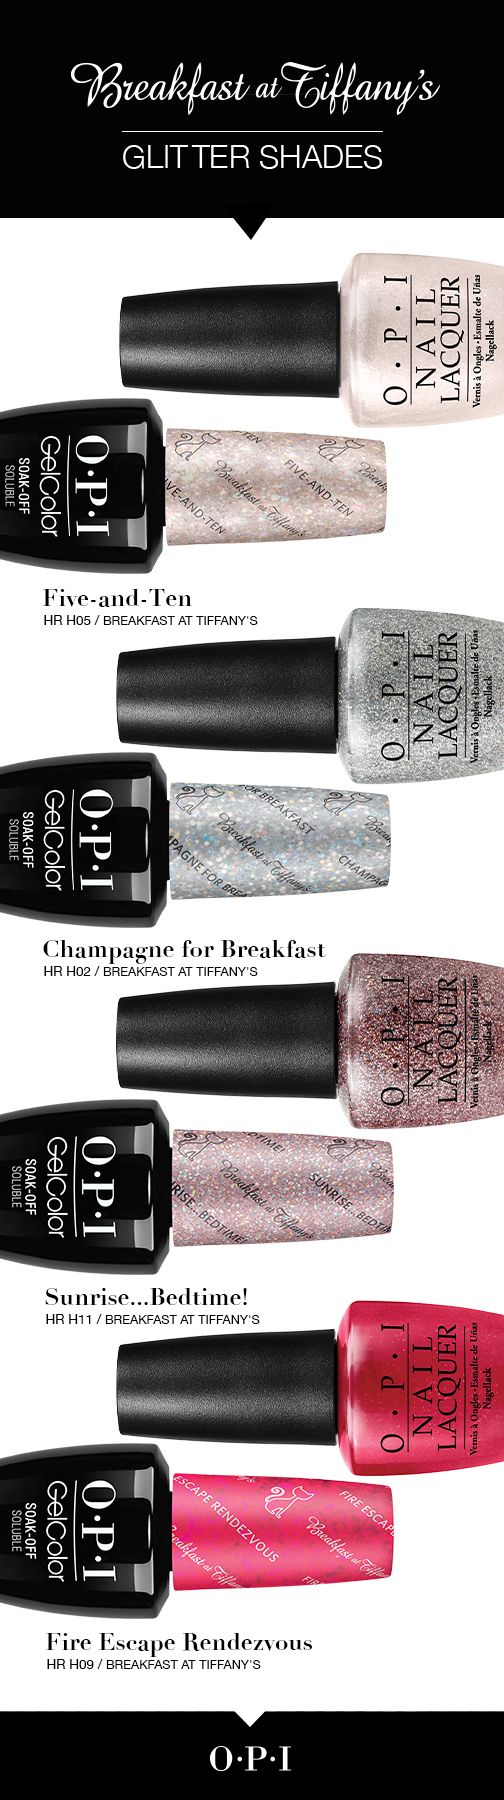 Meet the glitter shades from the new OPI Breakfast at Tiffany's collection. Inspired by the iconic film, Breakfast at Tiffany's, let your nails dazzle this holiday season with the exciting shades from#OPIBreakfastAtTiffanys. Each nail lacquer shade is perfectly paired in OPI GelColor. Complete your holiday outfit with a touch of sparkle!